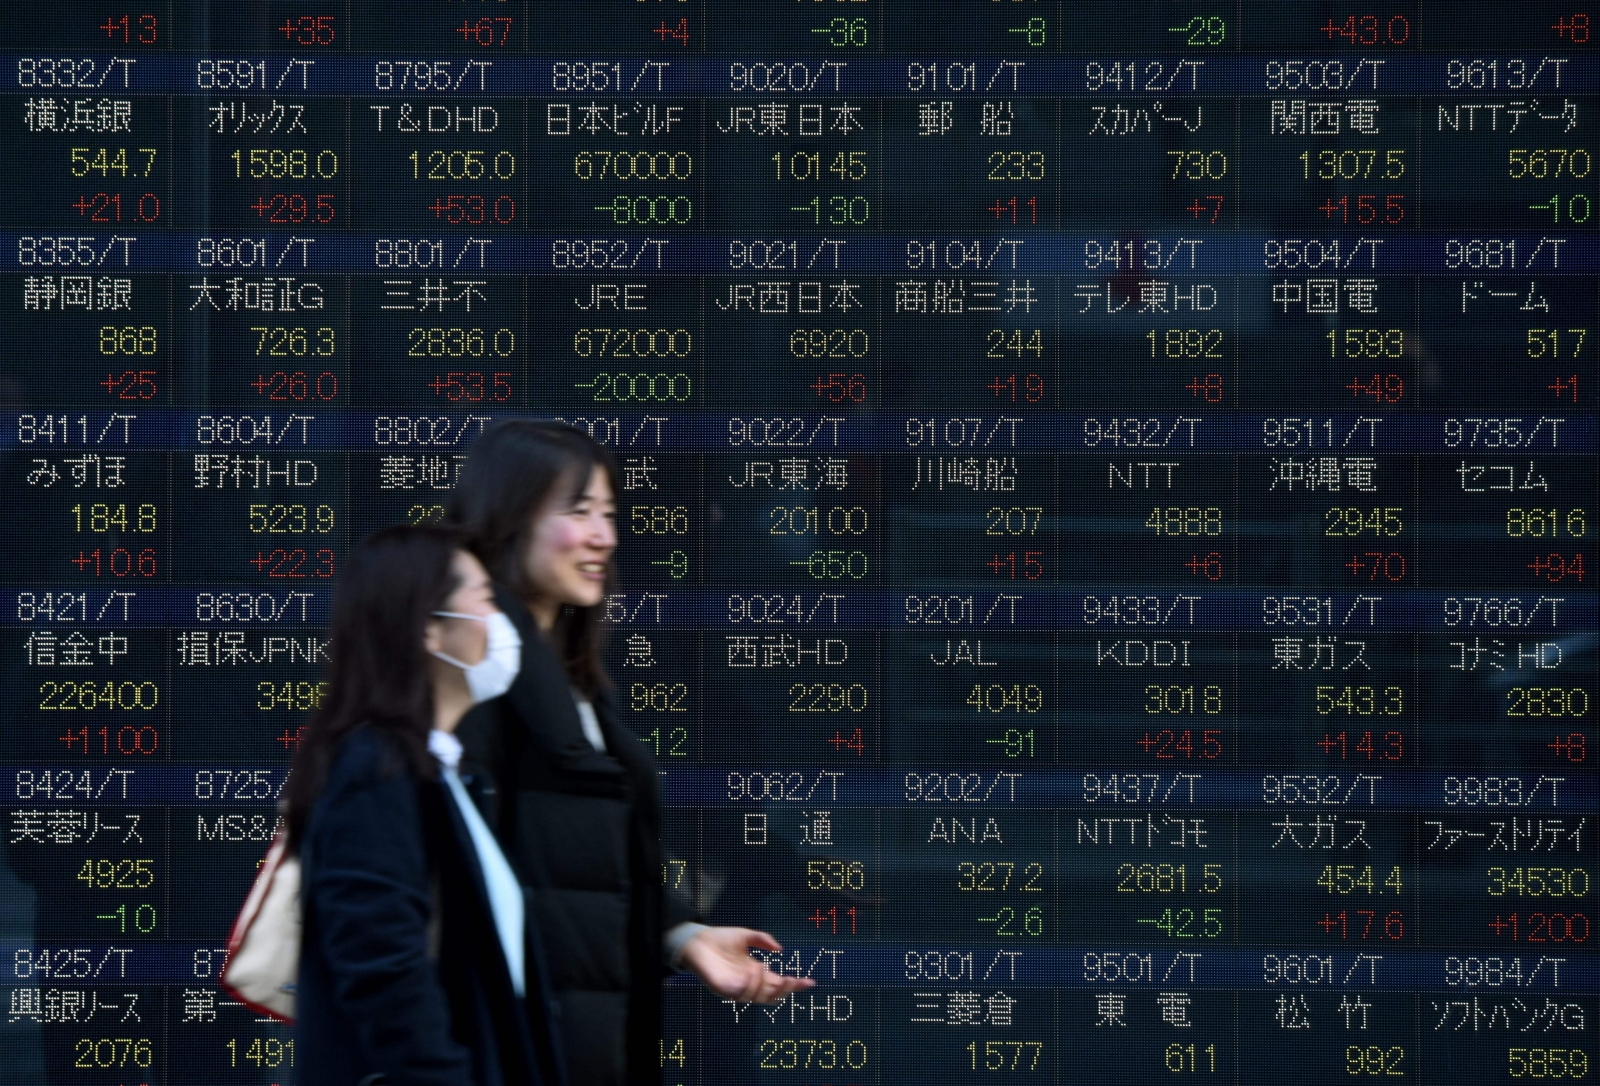 Asian markets trade higher as weak USdatareducechancesofaFedratehike